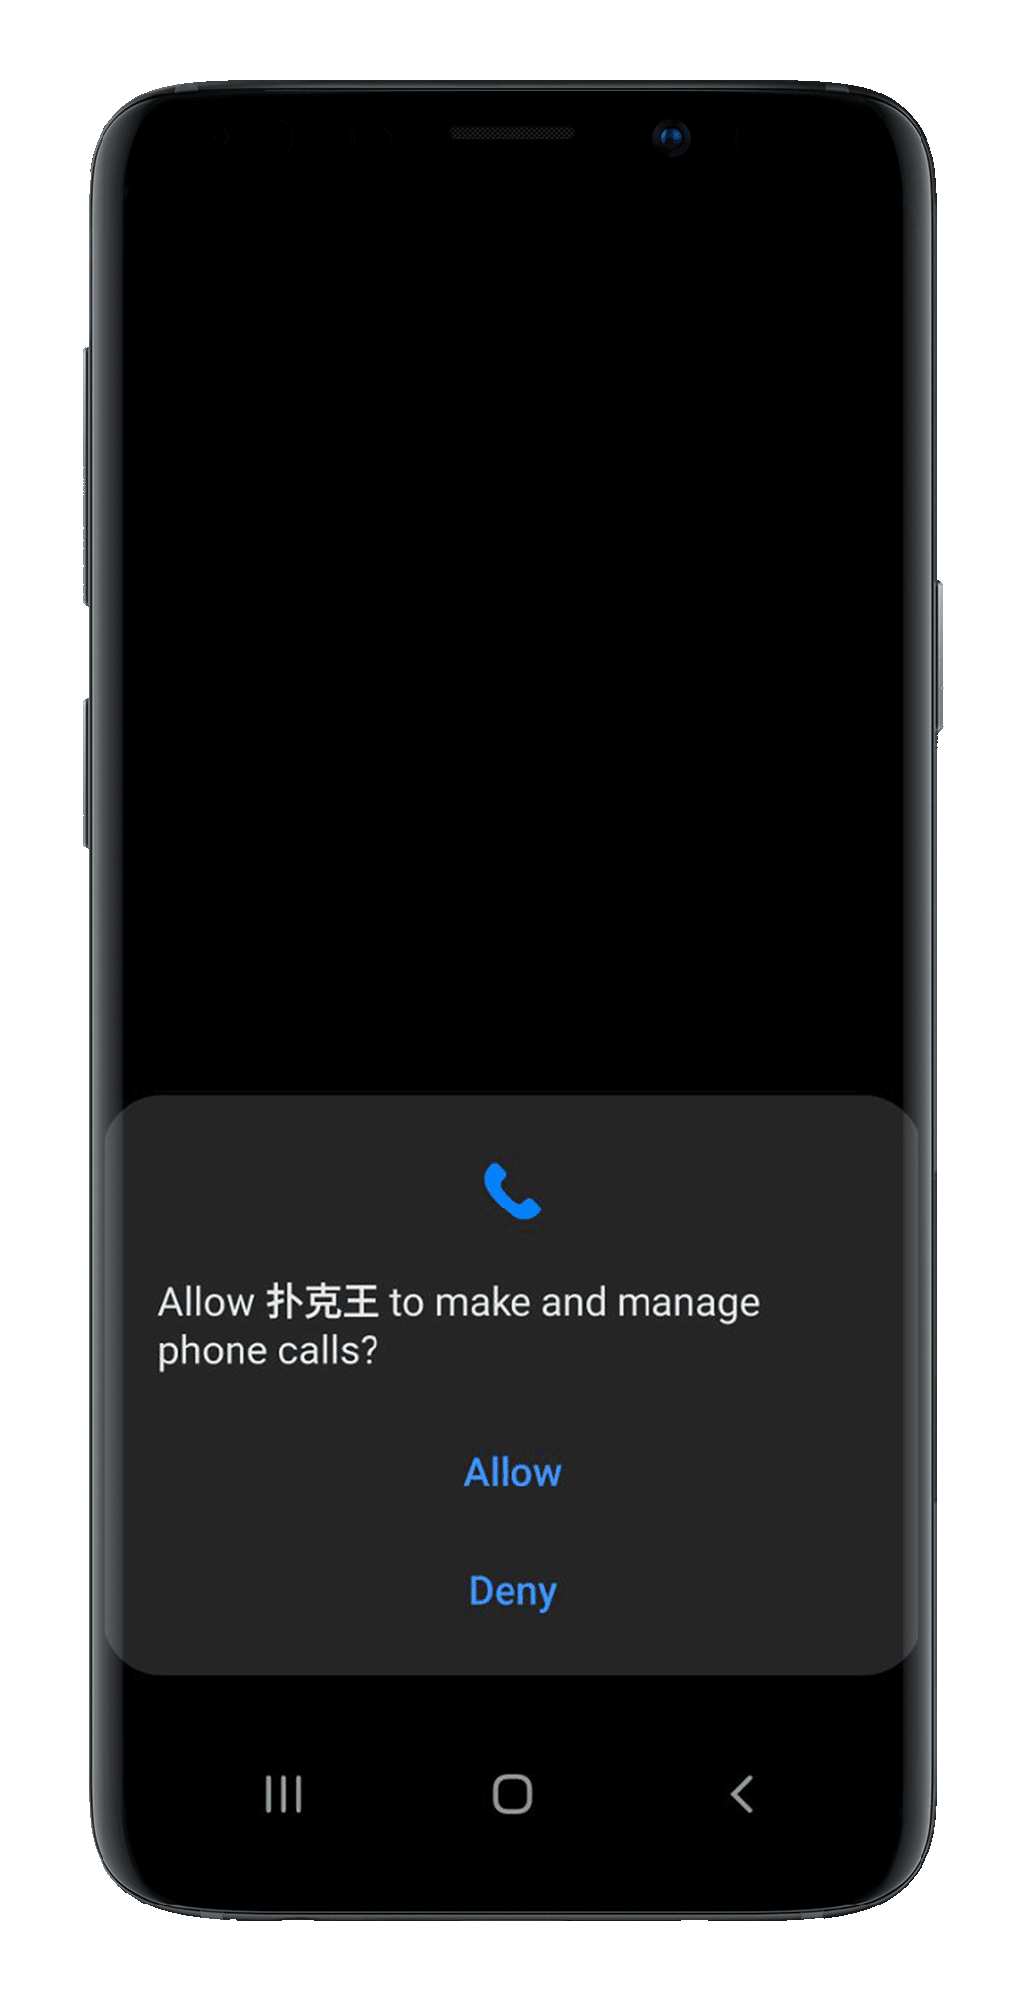 Allow the App to use phone's features: Make and manage phone calls